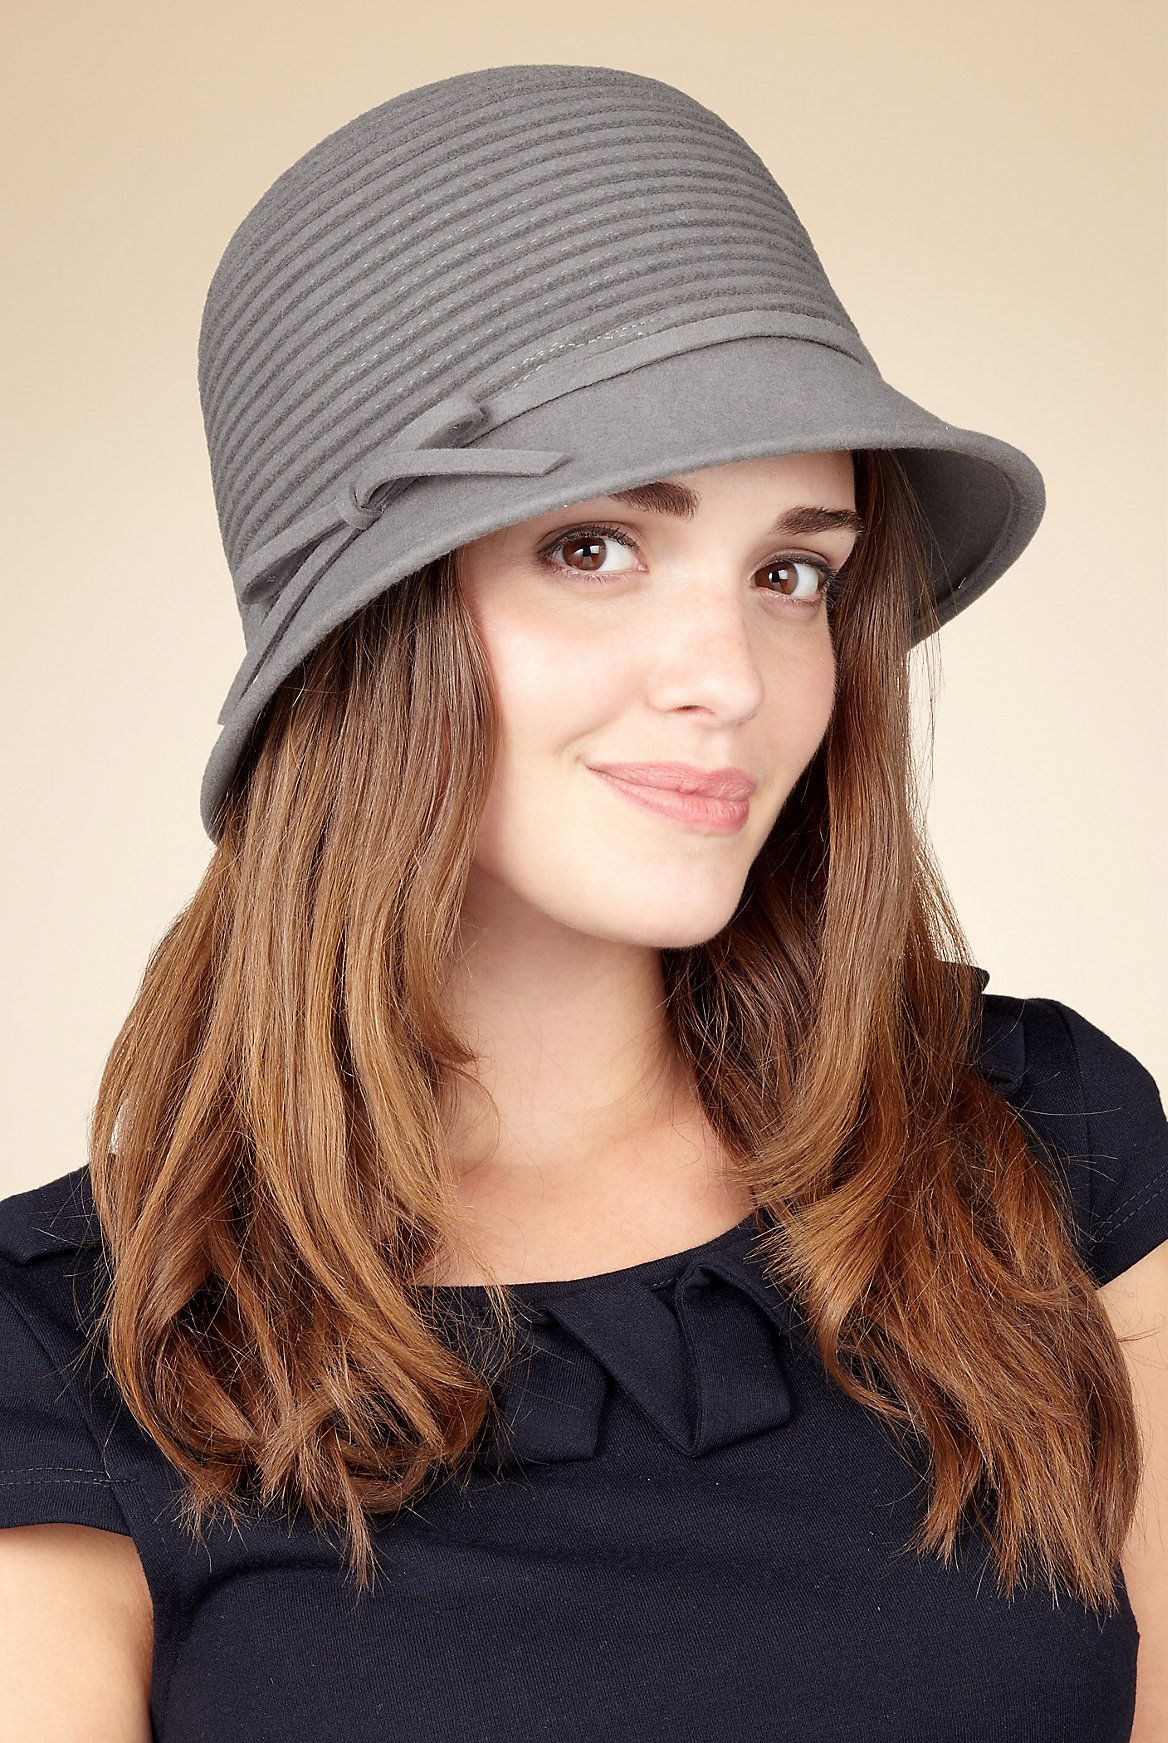 Wear hat how to cloche forecasting dress in winter in 2019